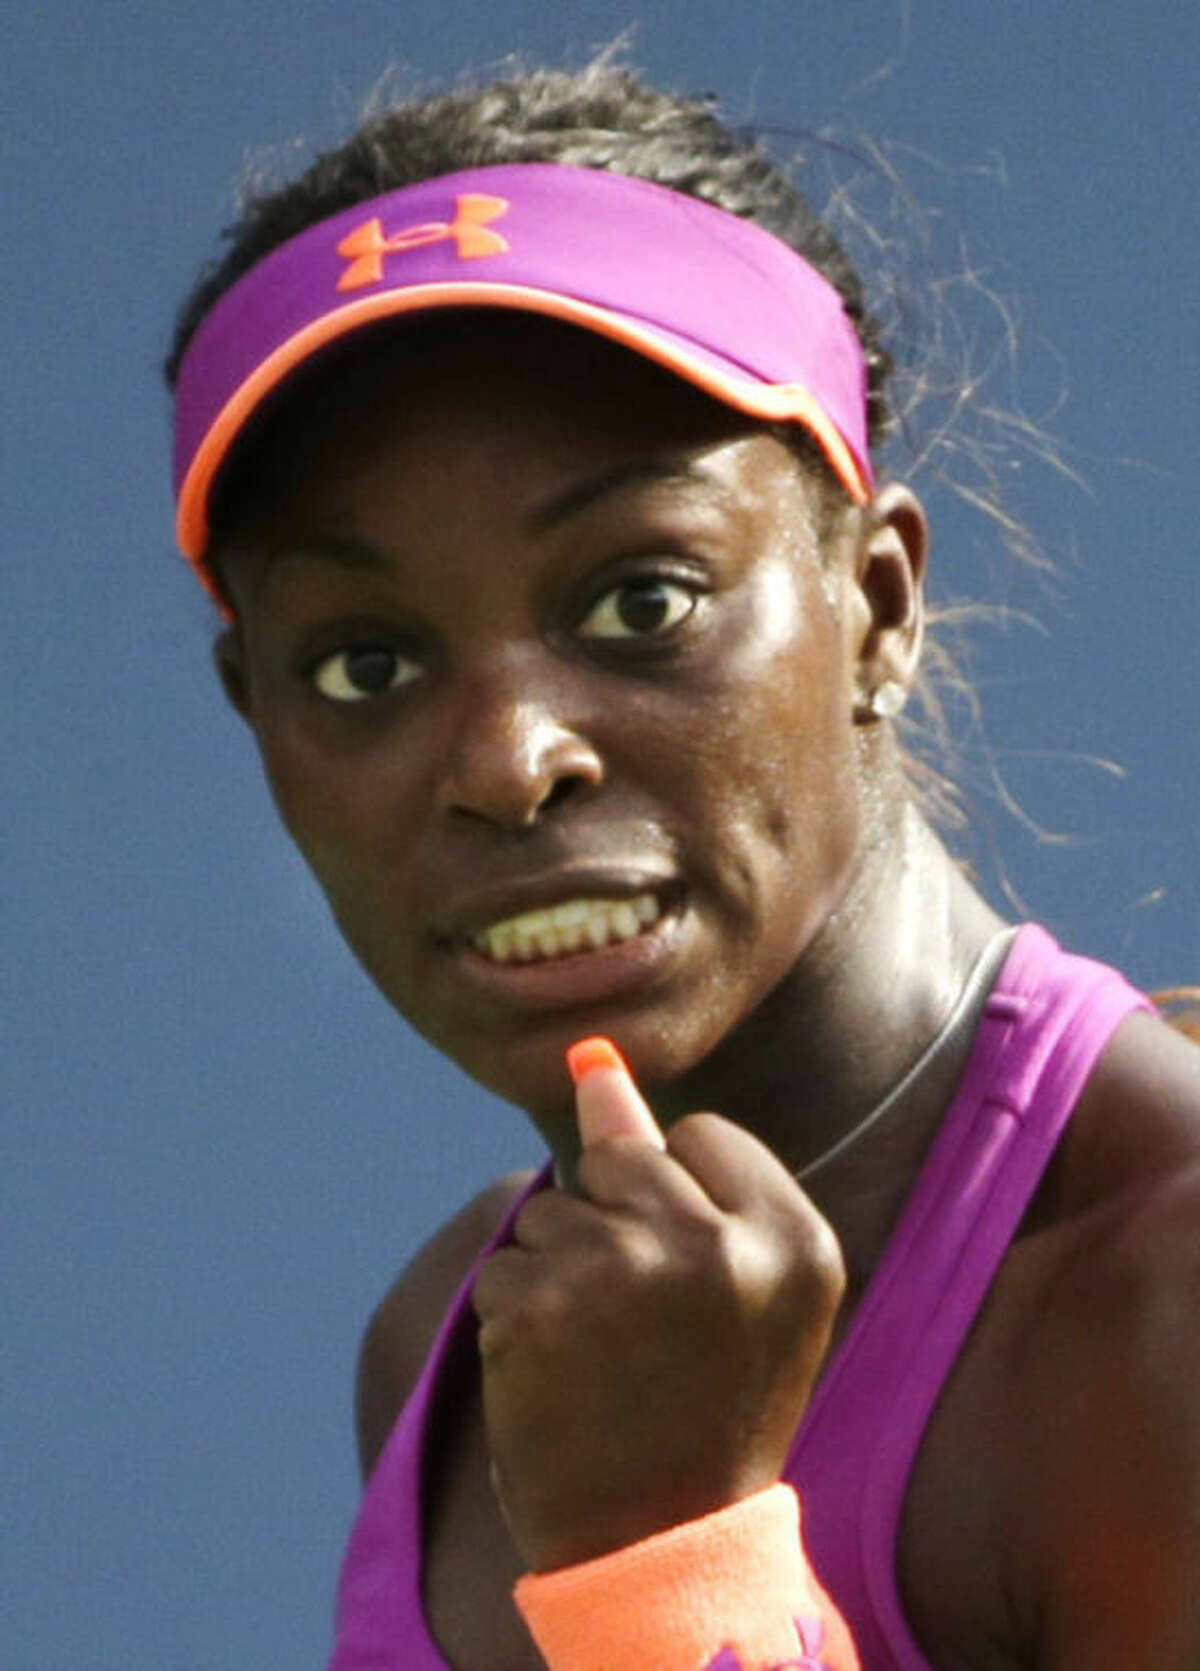 Sloane Stephens reacts after a shot against Jamie Hampton during the third round of the 2013 U.S. Open tennis tournament, Friday, Aug. 30, 2013, in New York. (AP Photo/David Goldman)